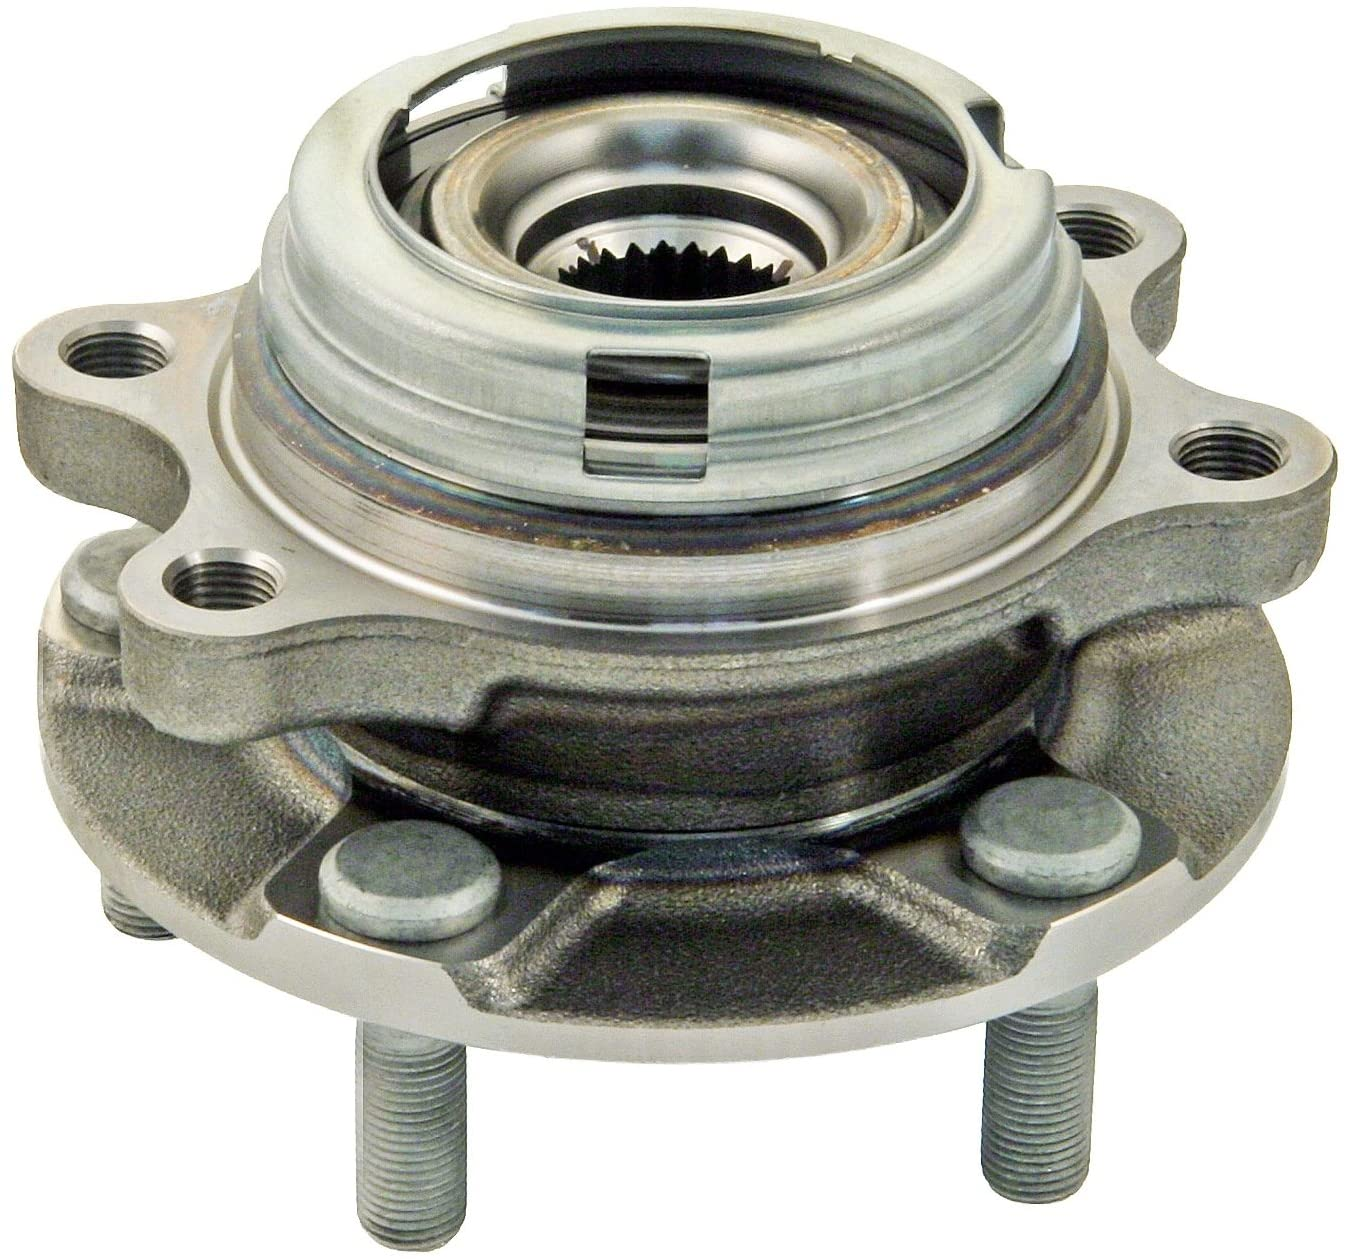 Stirling - 2007 For Infiniti M35 Front Wheel Bearing and Hub Assembly x 1